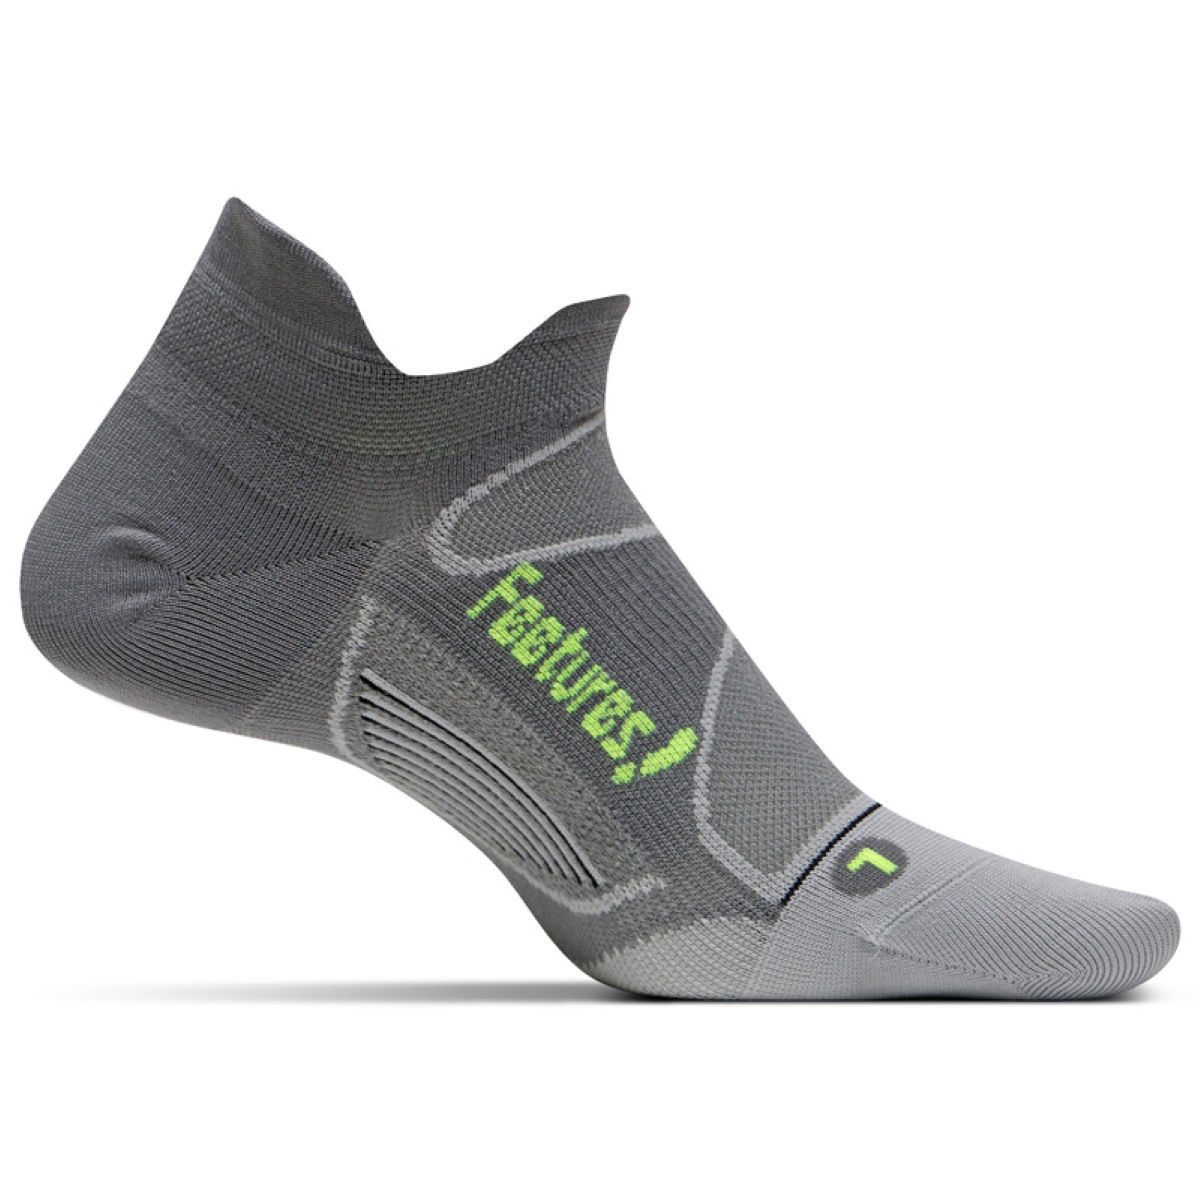 Chaussettes Feetures! Elite Ultra Light No Show Tab - XL Emerald